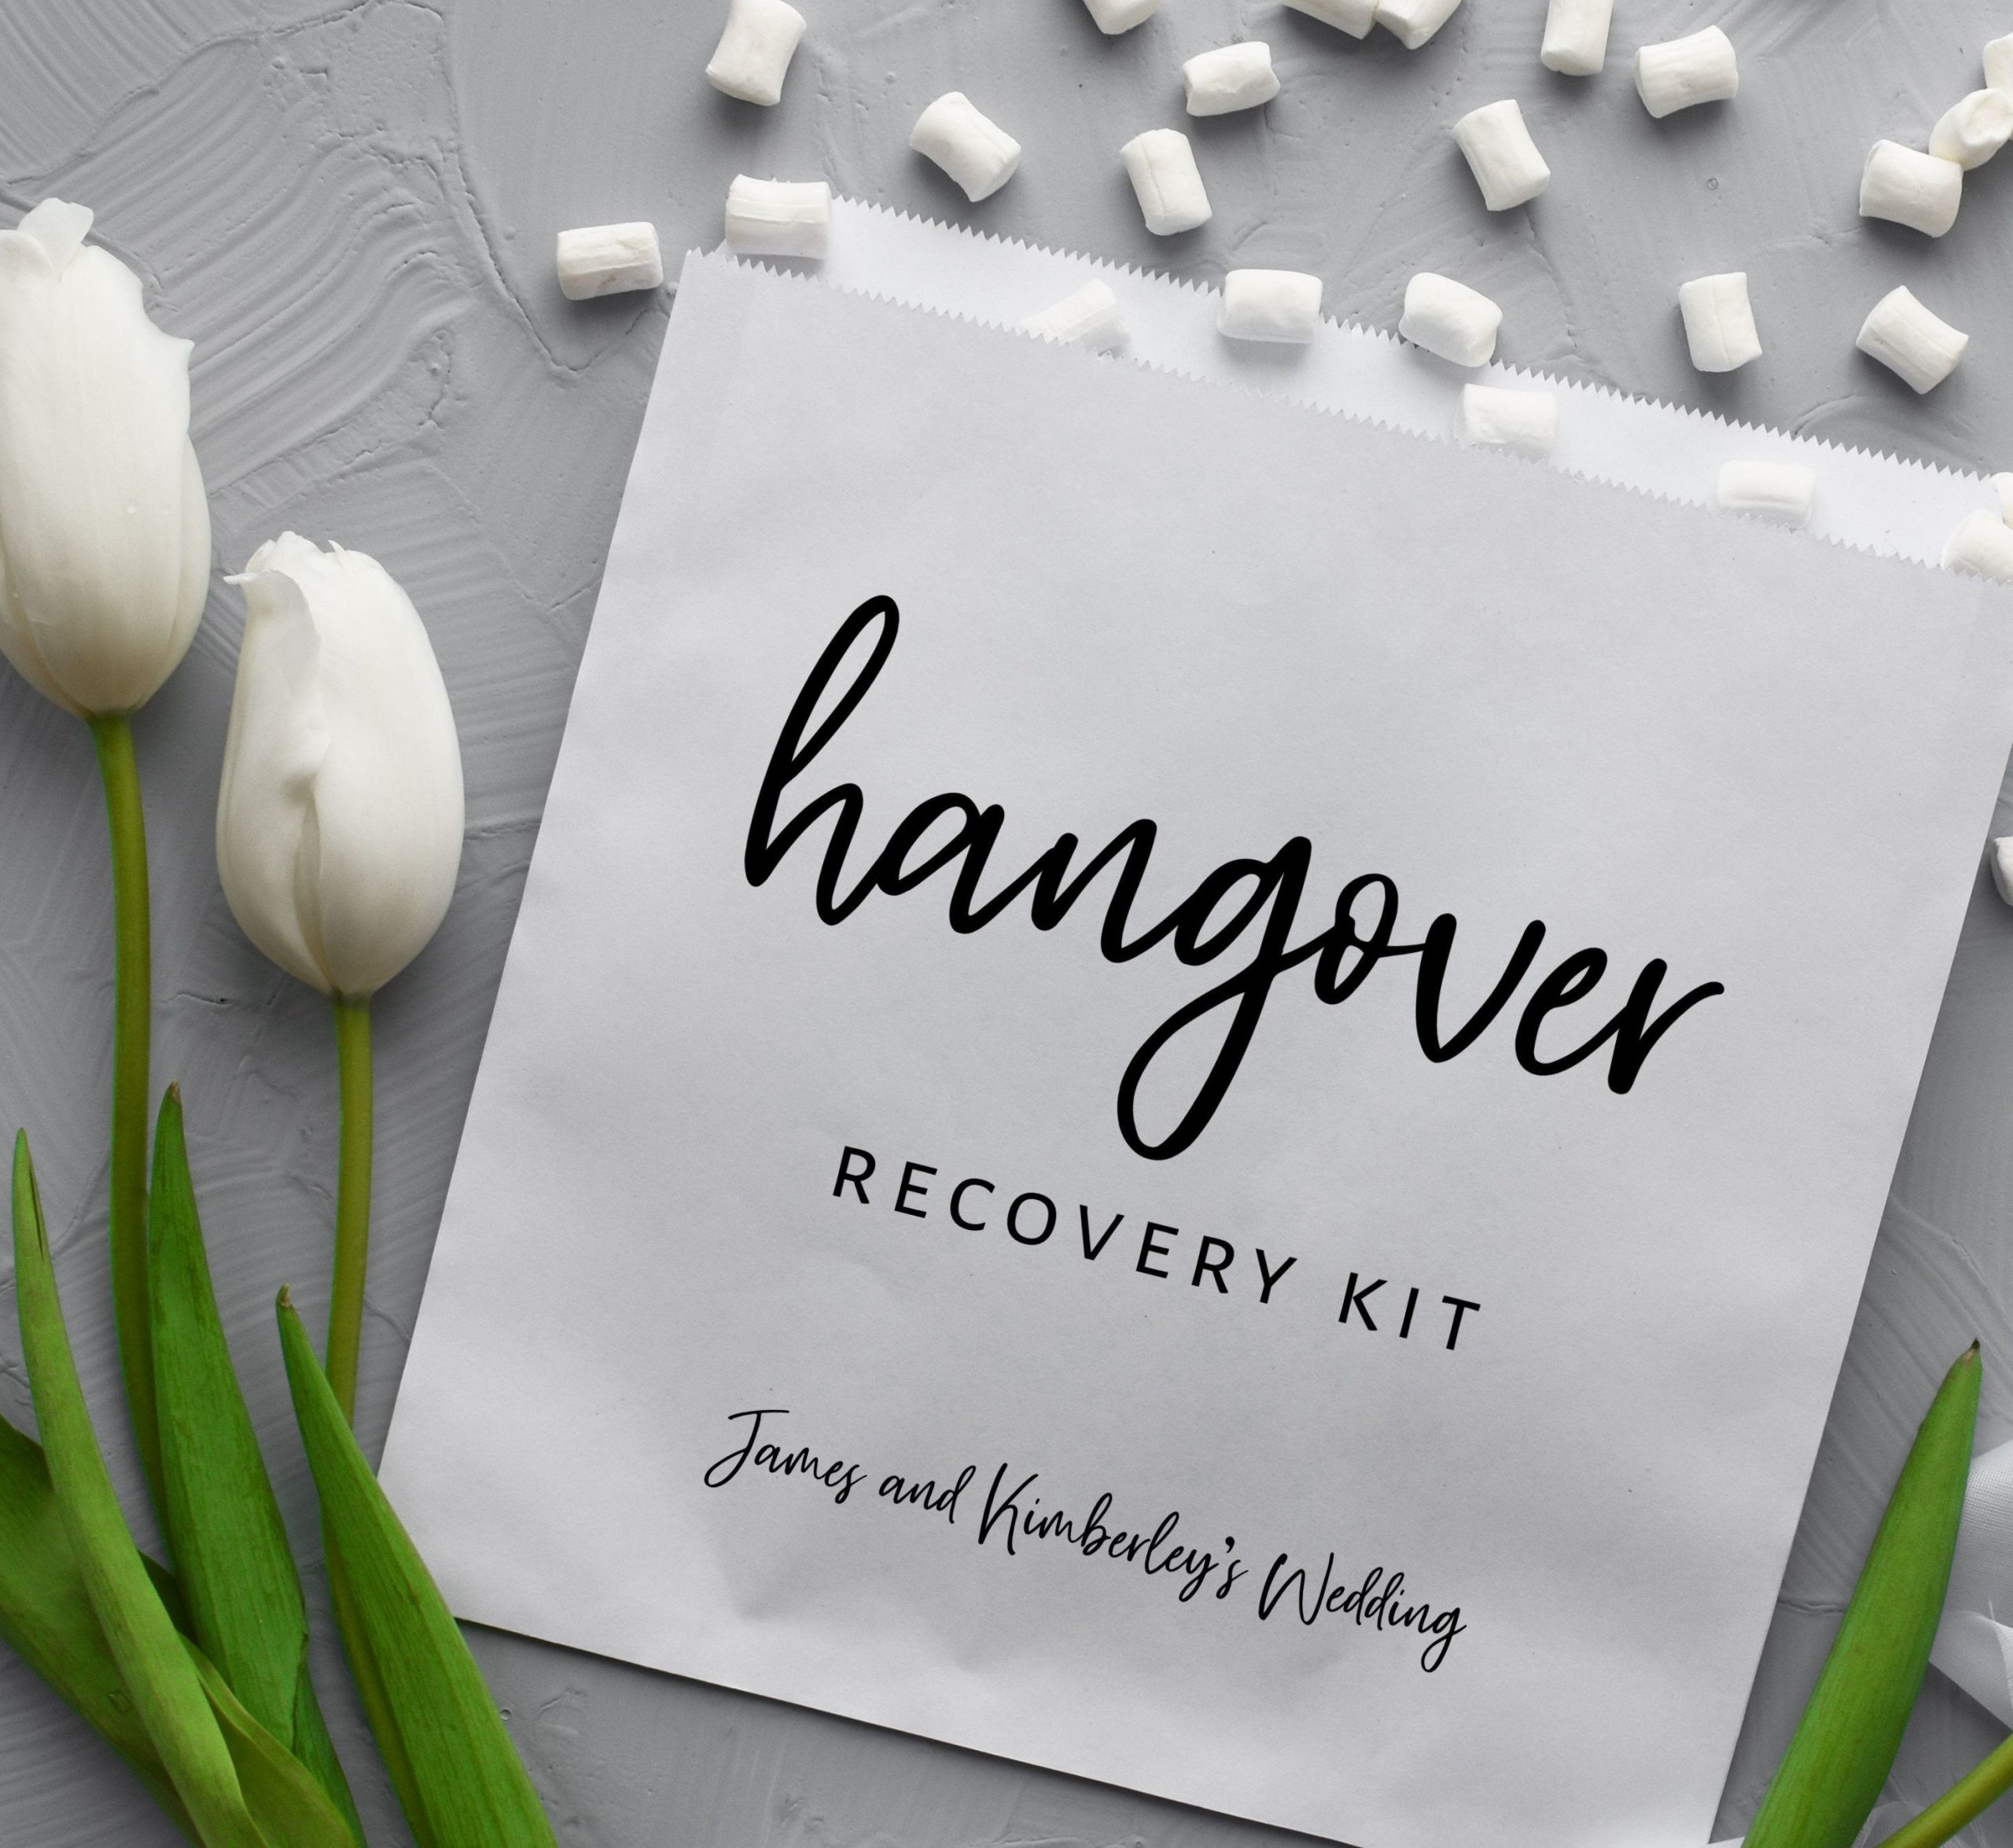 Hangover Recovery Kit Bags - Wedding Favours For Under 50p